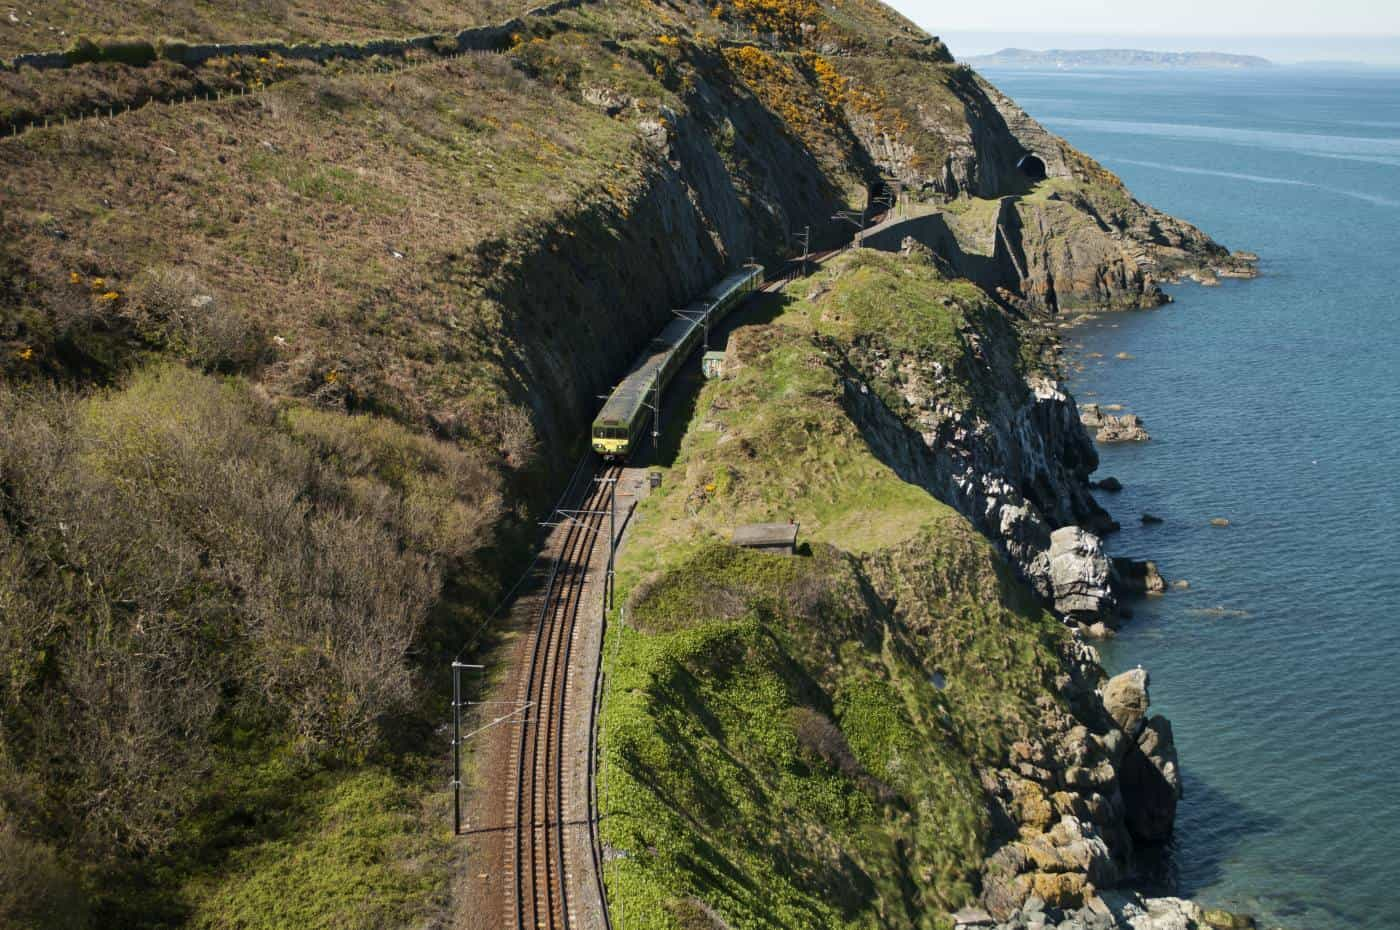 The Coastal Path follows this train route | c/o Deposit Photos